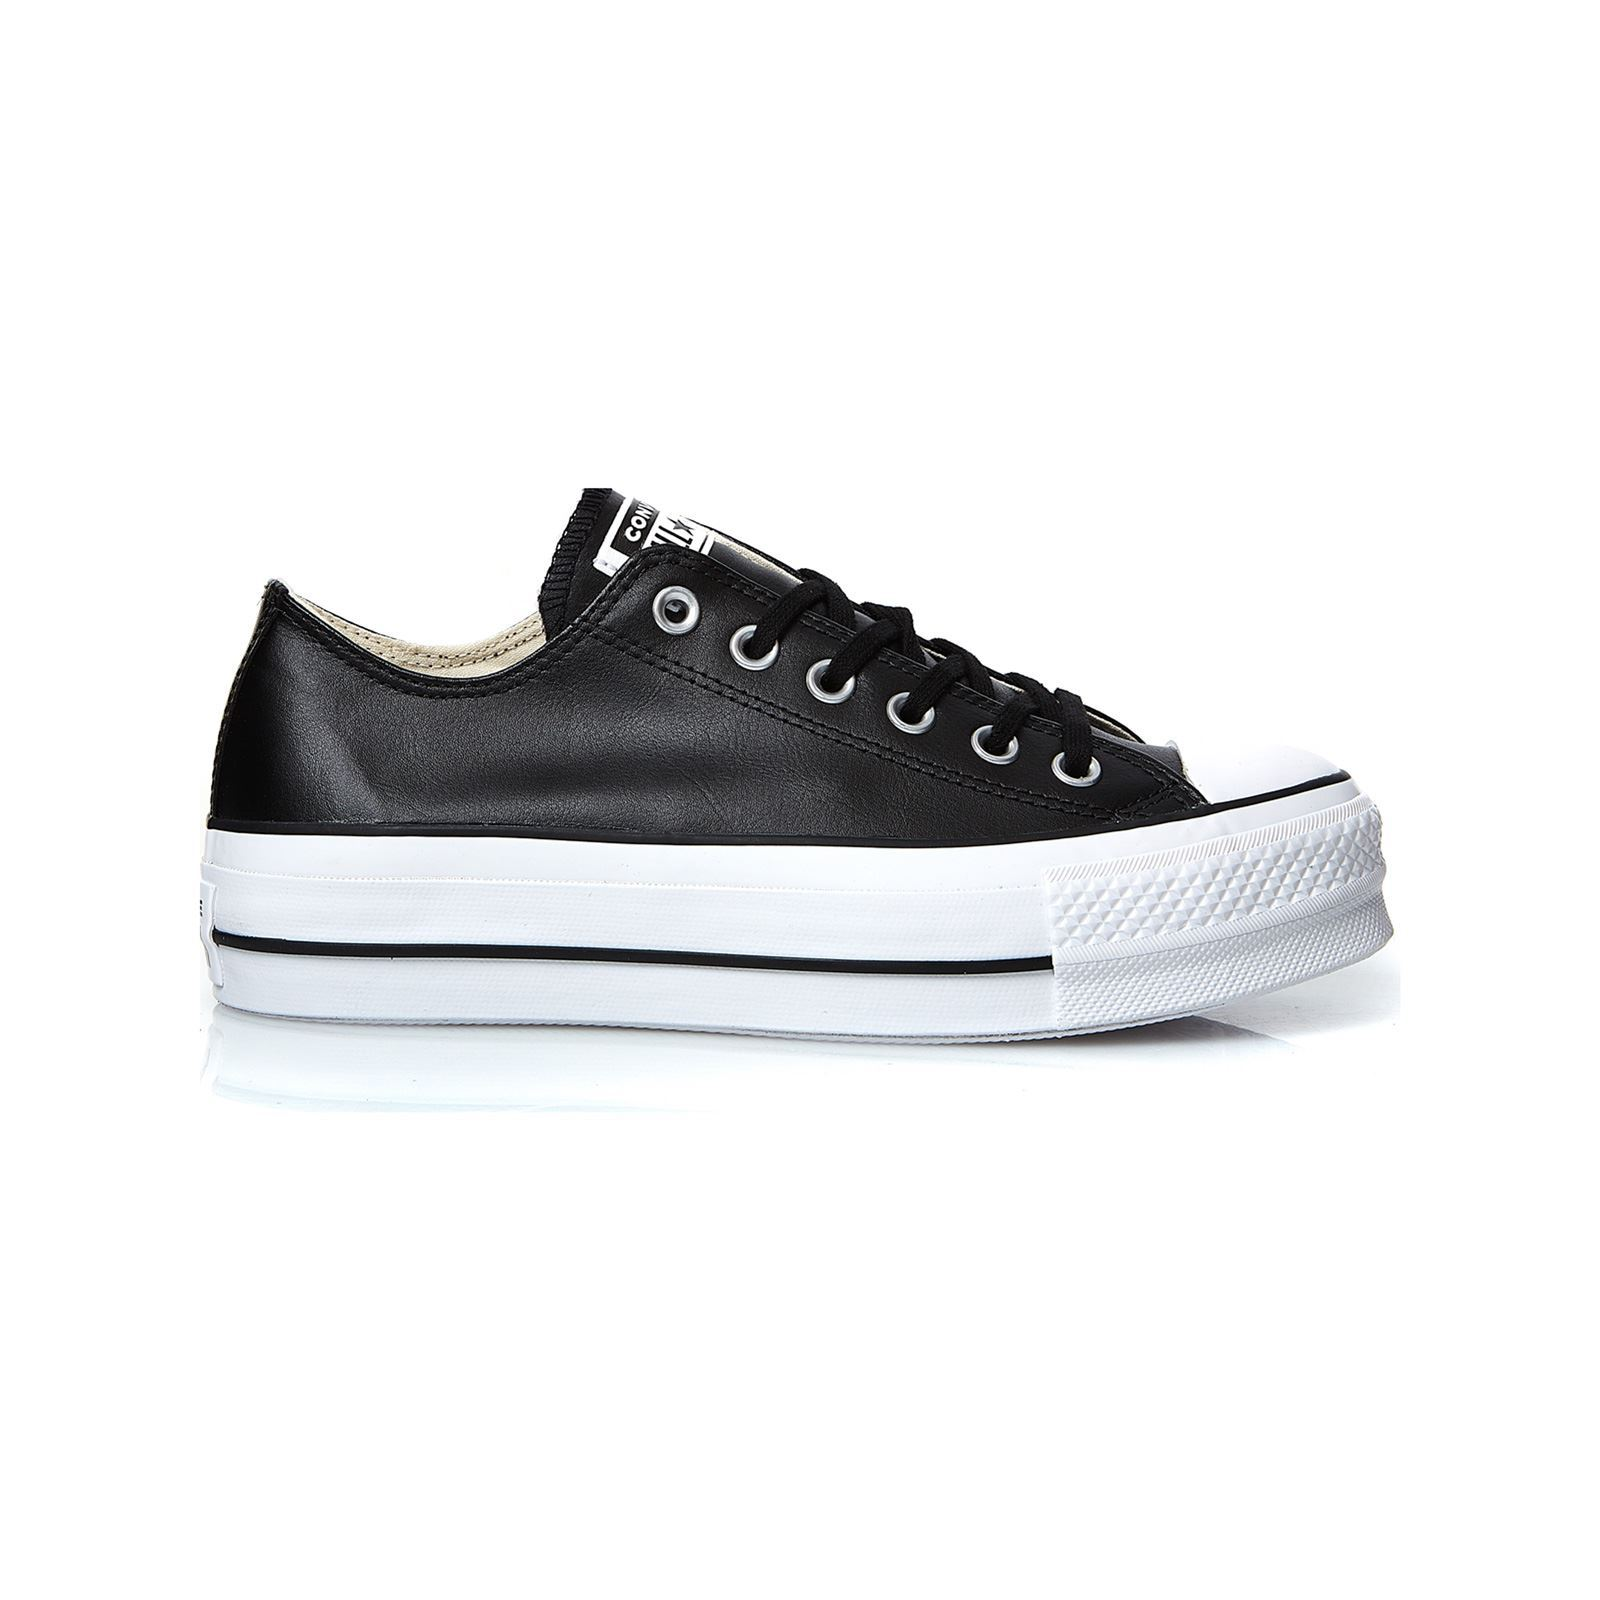 Converse Chuck Taylor All Star Sneakers basse nero